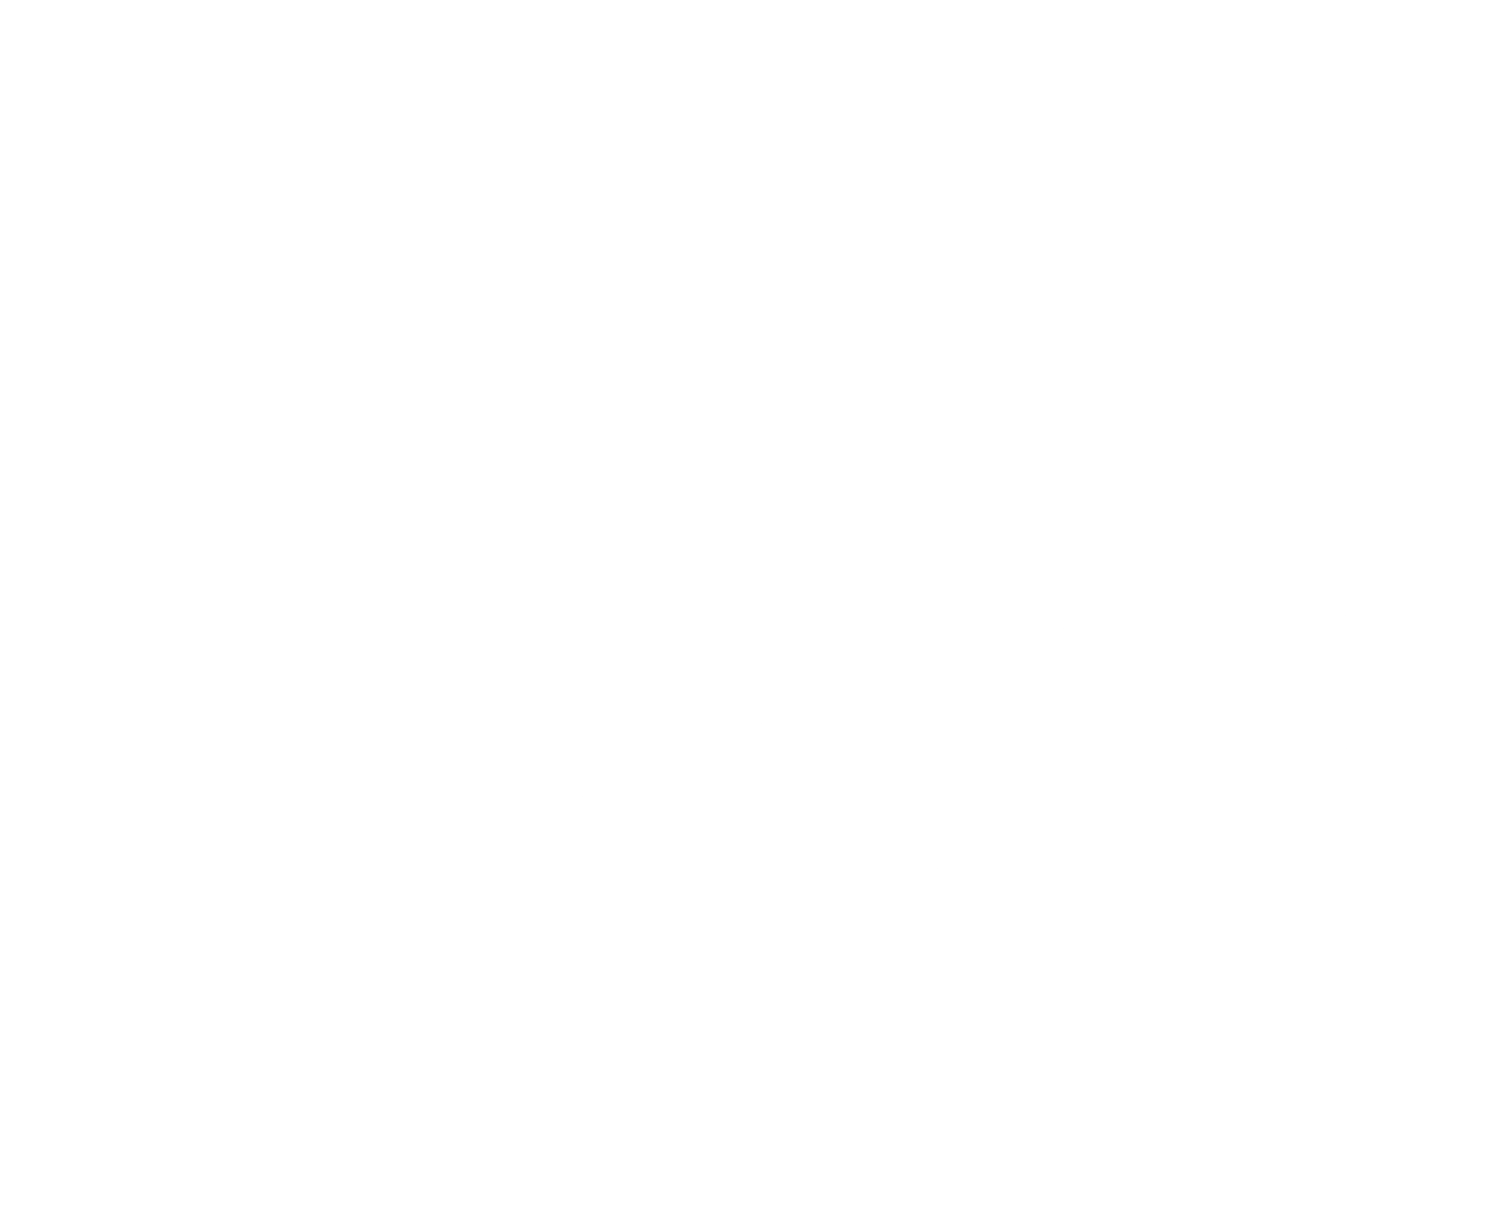 CrossFit Dodge City